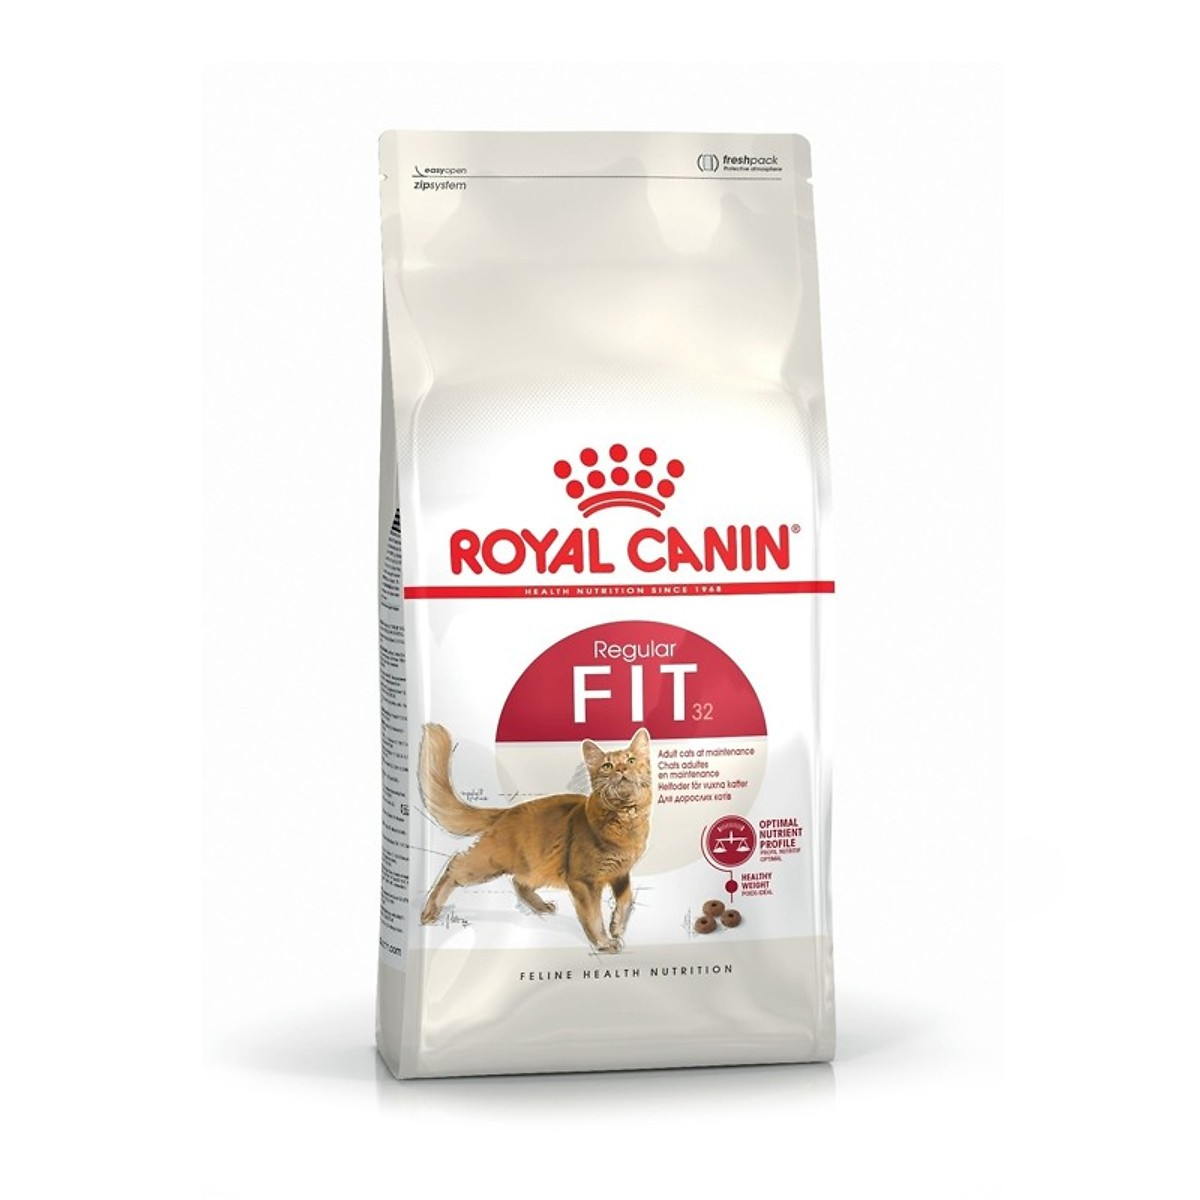 ROYAL CANIN FIT32 10kg